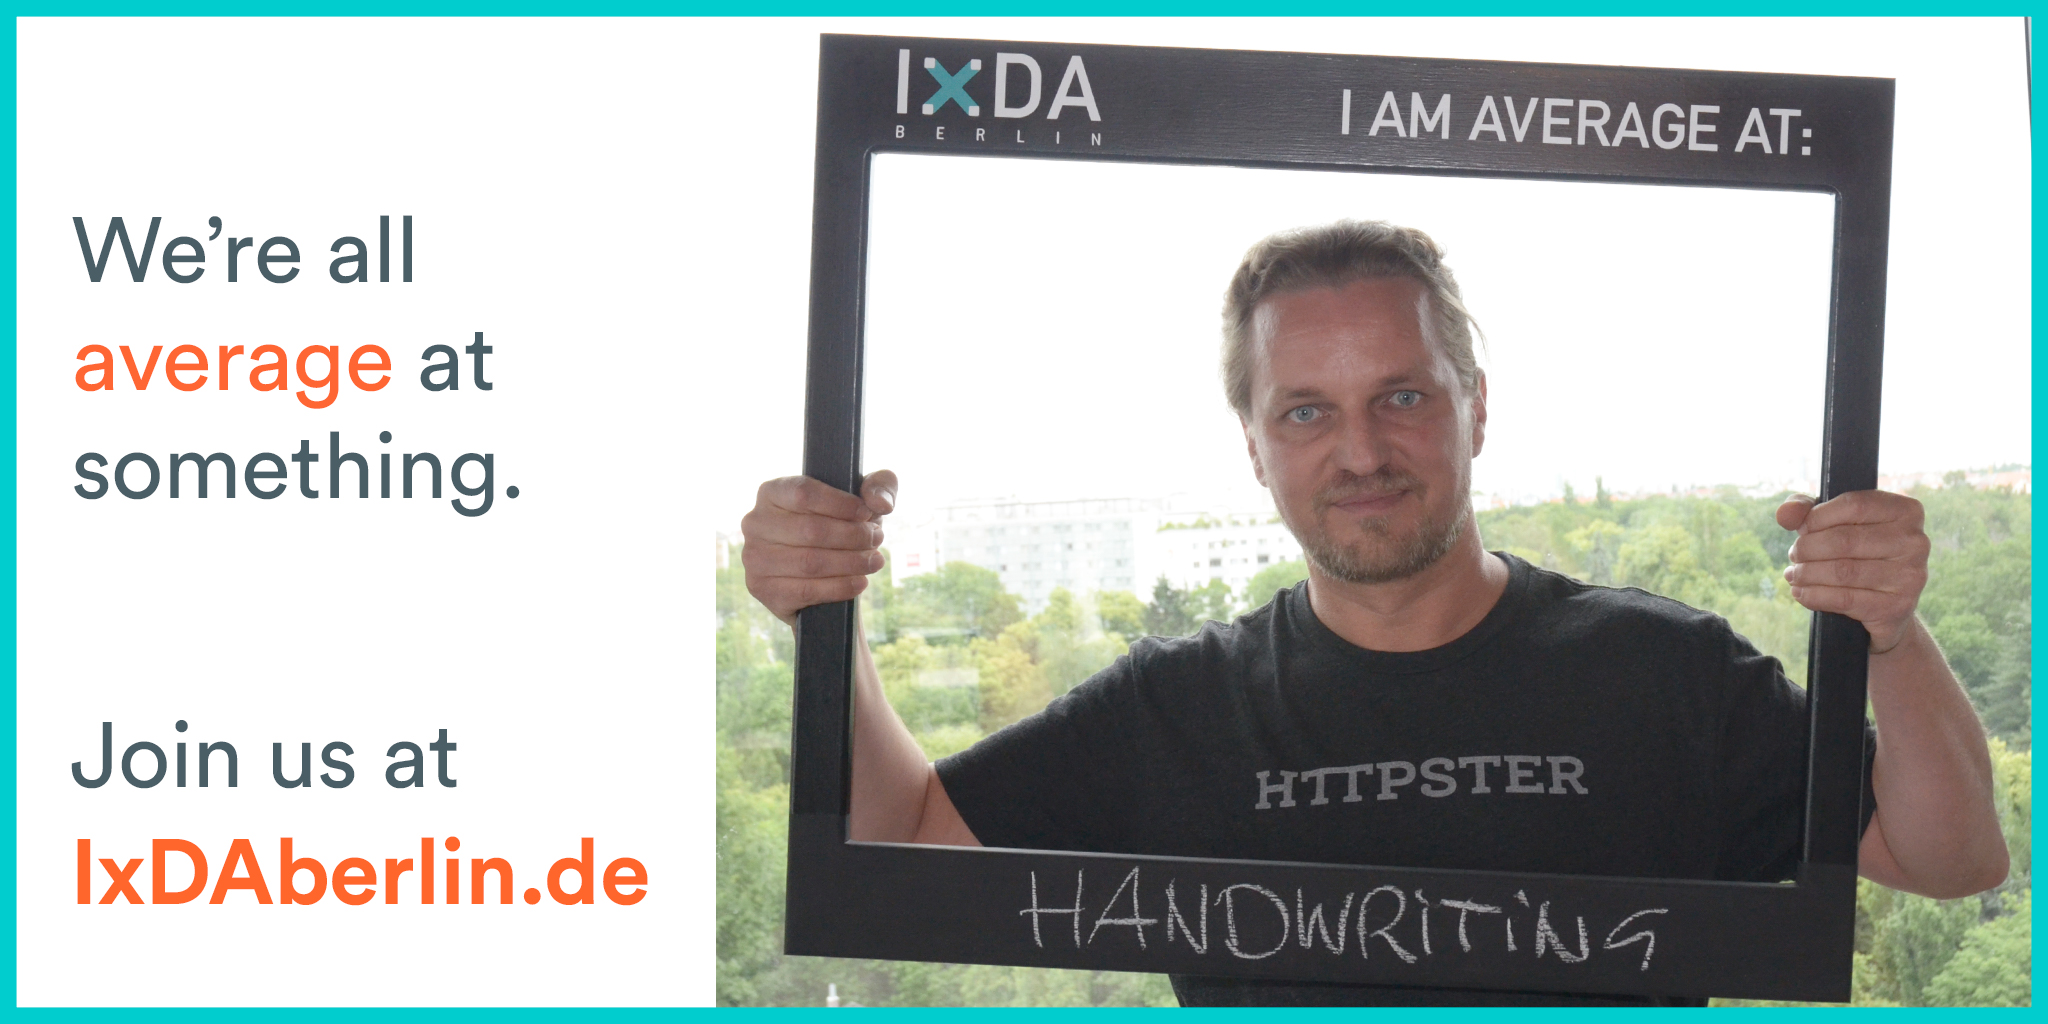 Jay in the Frame of Average. He's average at handwriting! What's your average? Join us at http://IxDAberlin.de